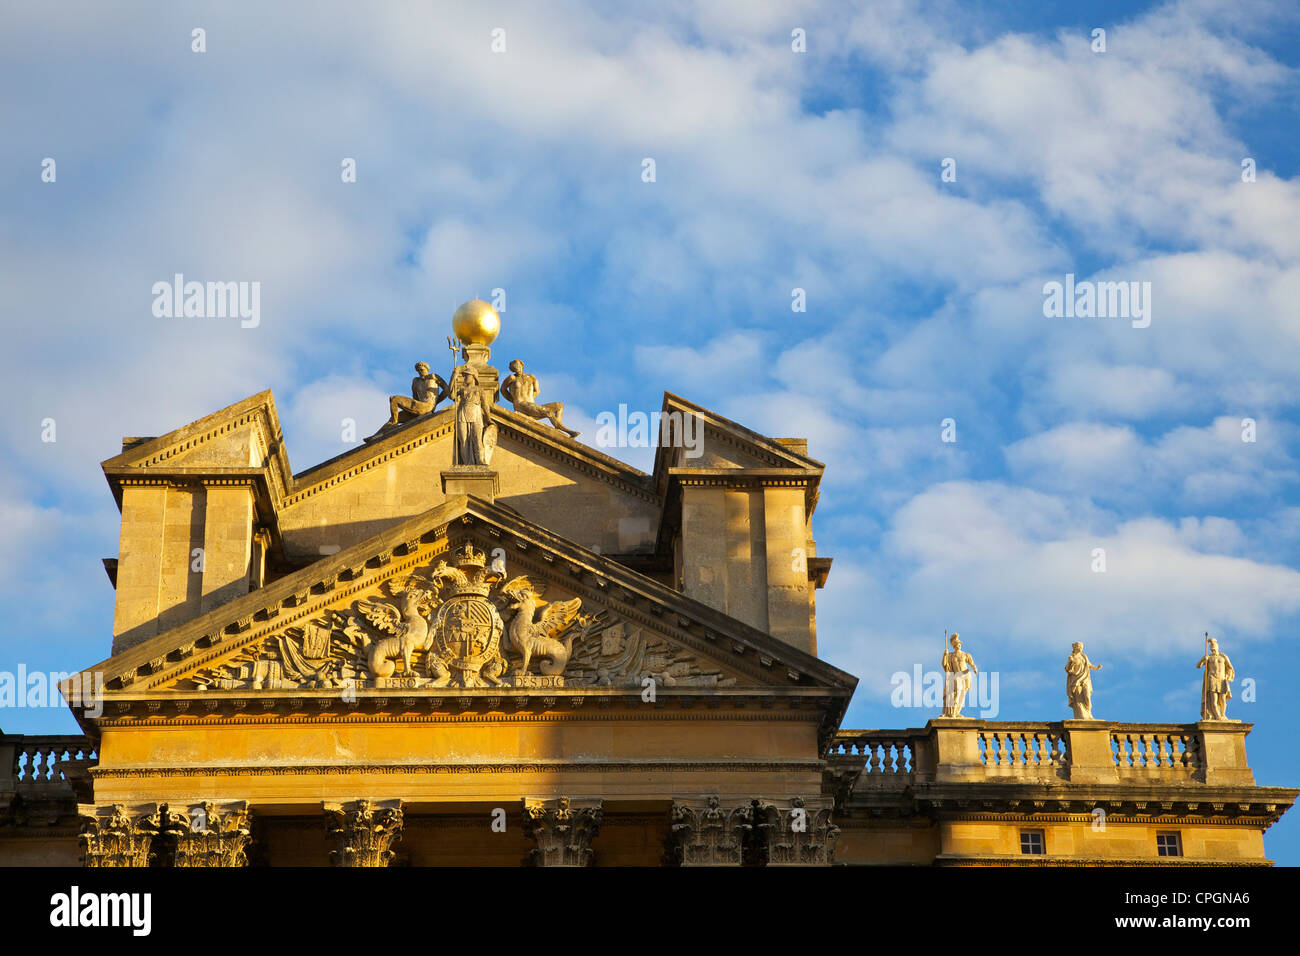 Detail of main entrance of Blenheim Palace, birthplace of Sir Winston Churchill, Woodstock, Oxfordshire, England, - Stock Image